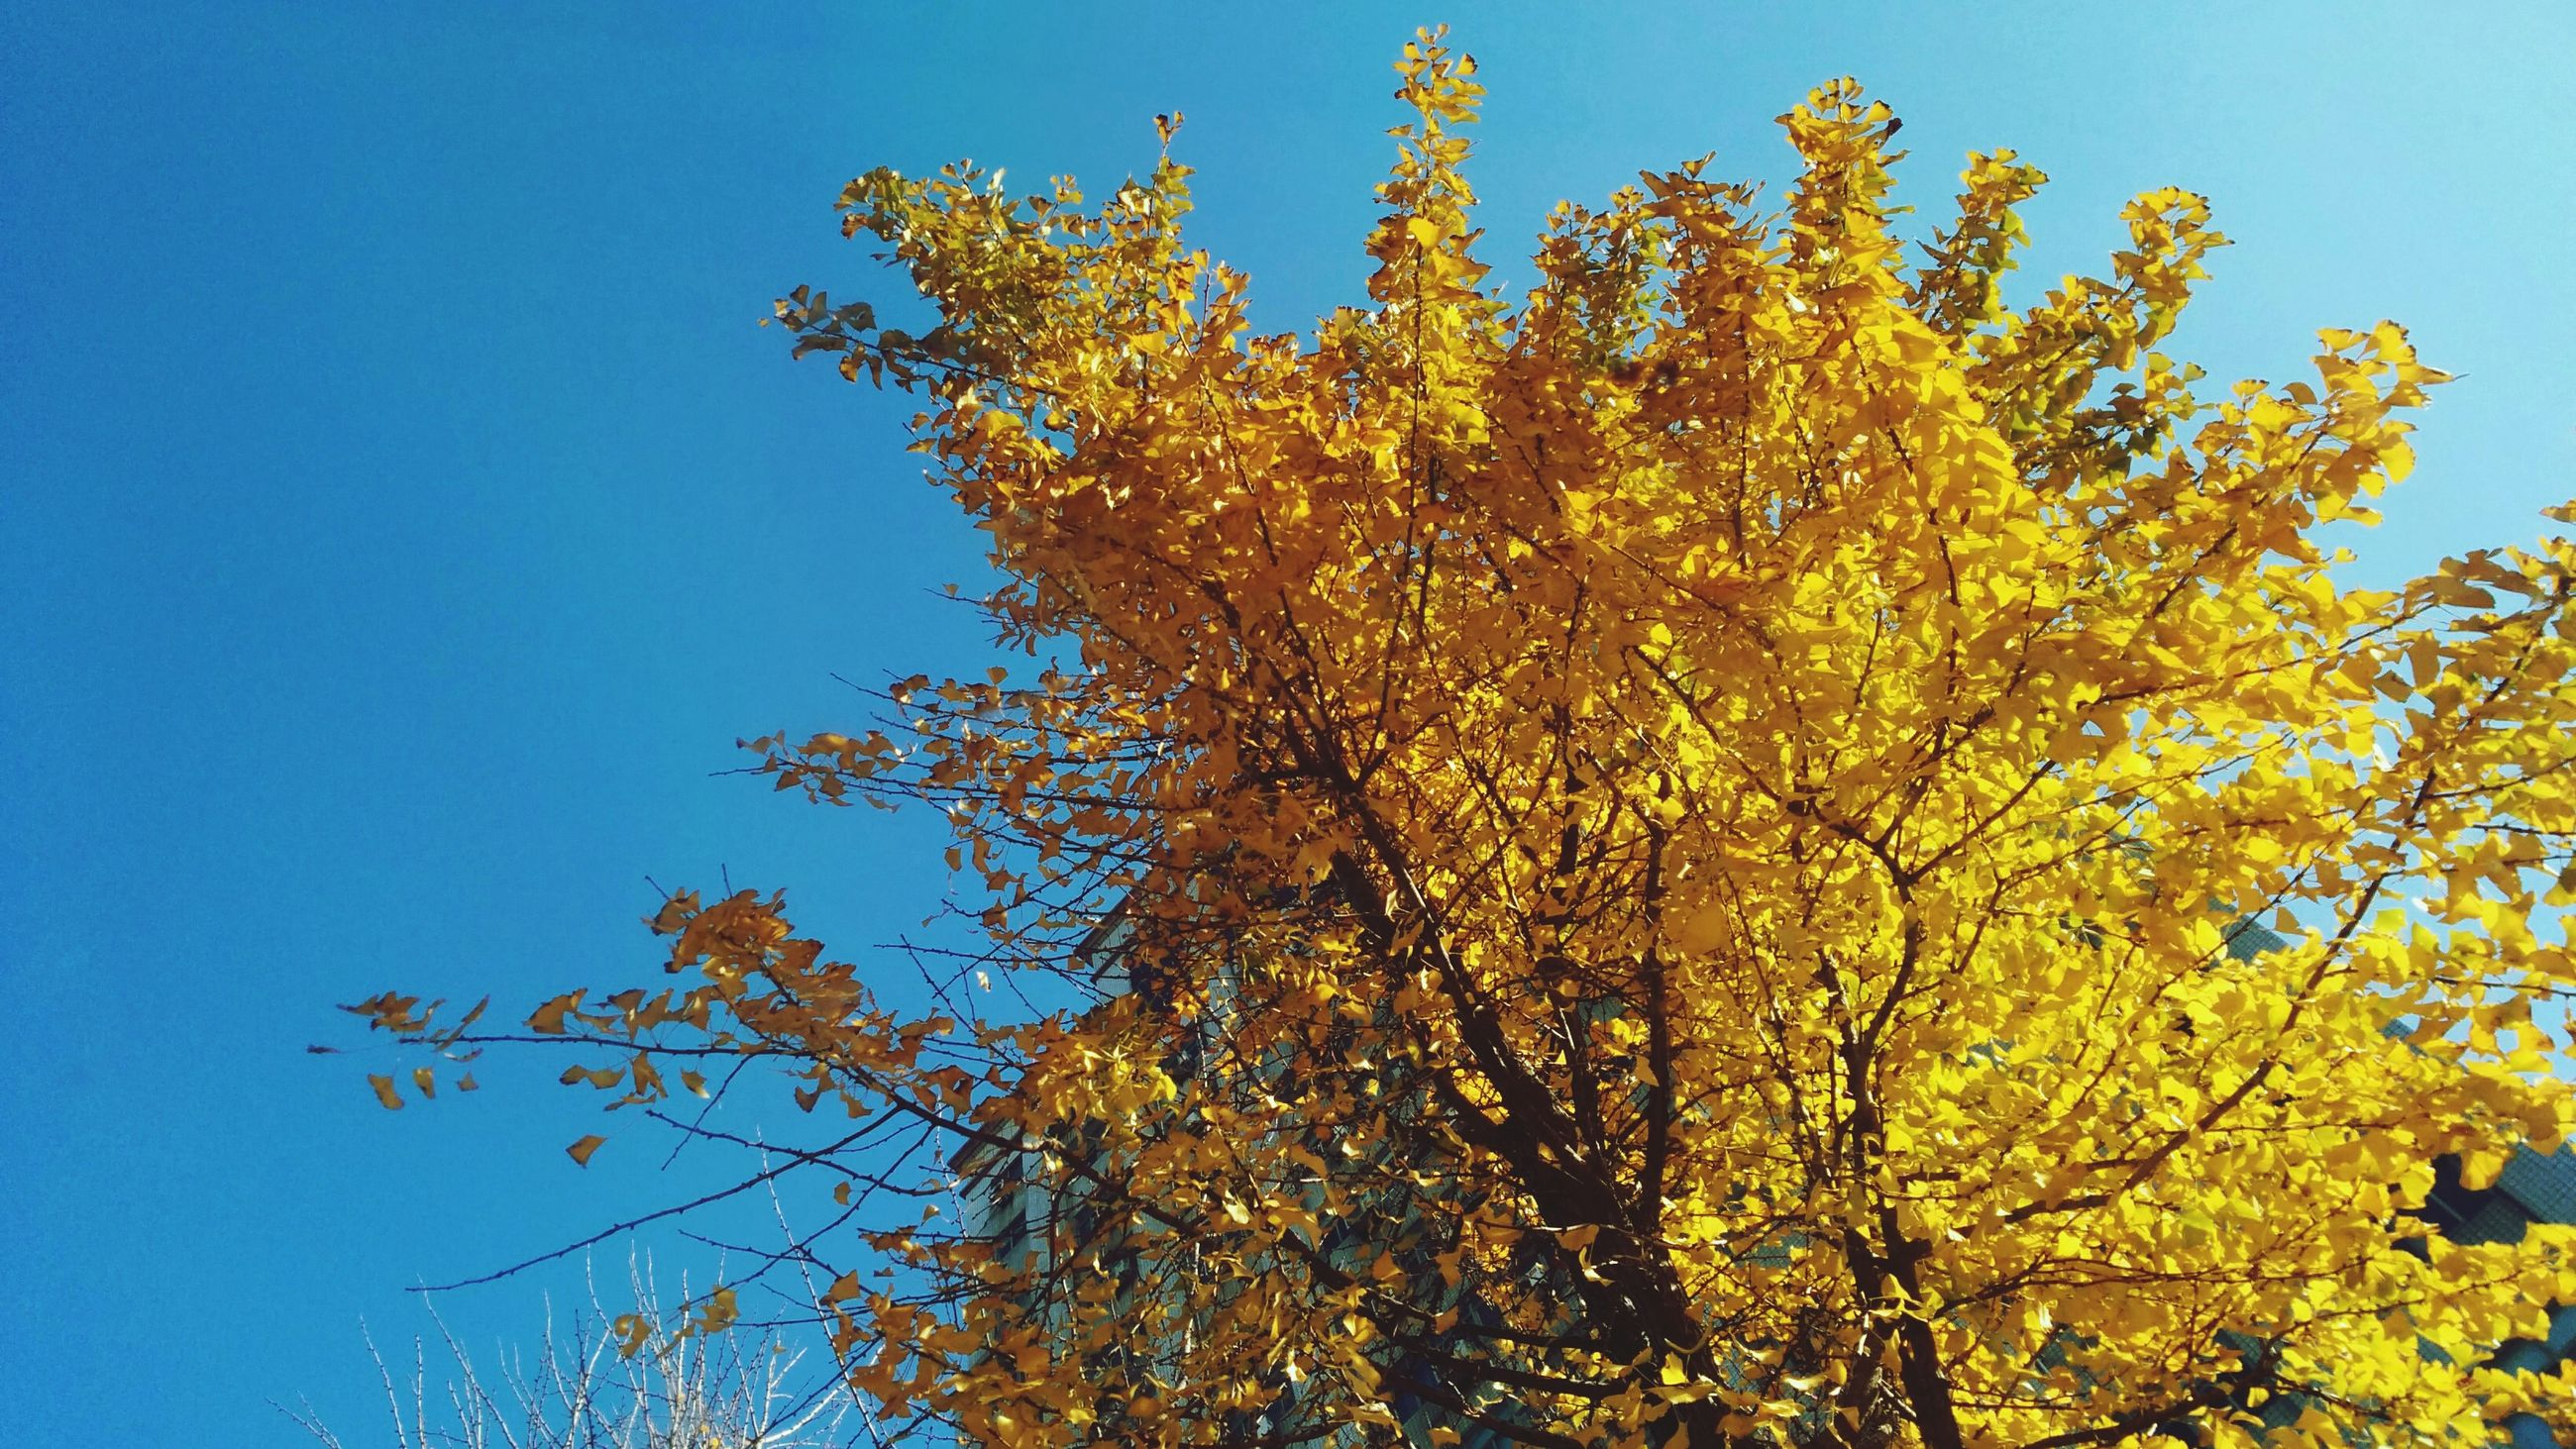 clear sky, tree, low angle view, growth, blue, branch, nature, autumn, tranquility, beauty in nature, yellow, change, sunlight, season, sky, day, scenics, tranquil scene, no people, outdoors